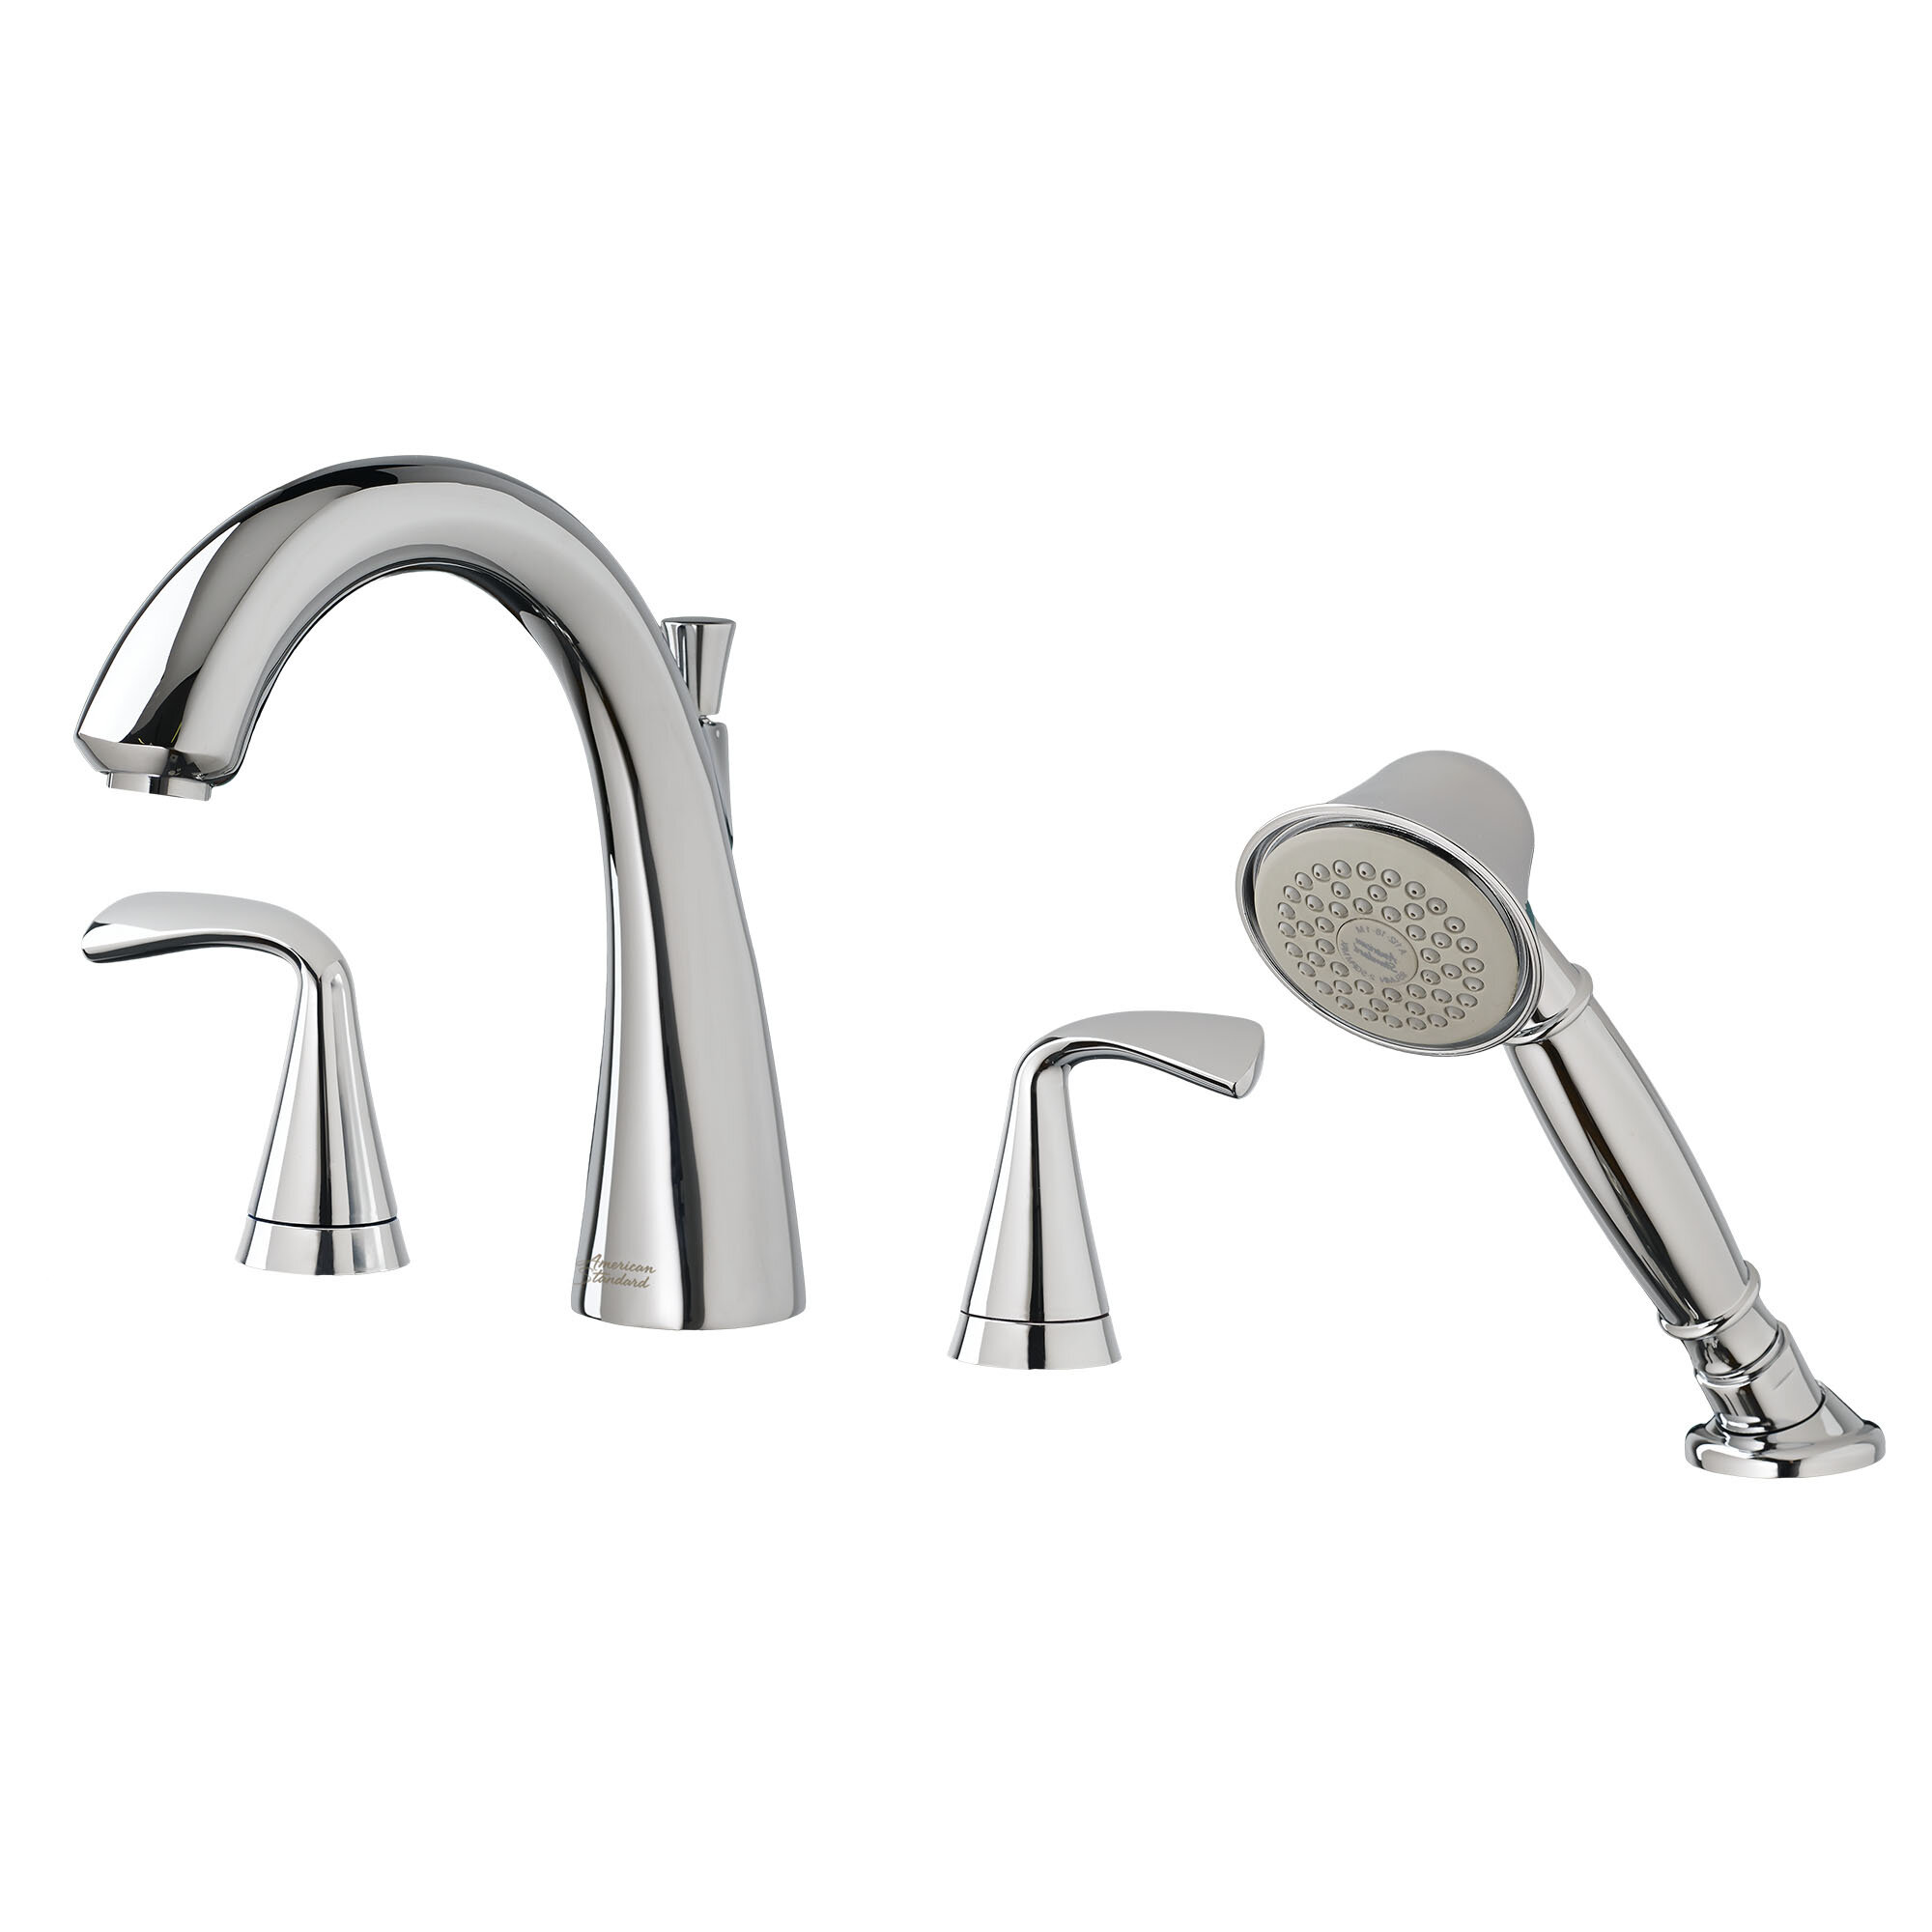 American Standard Fluent Double Handle Deck Mounted Roman Tub Faucet Trim With Diverter And Handshower Wayfair